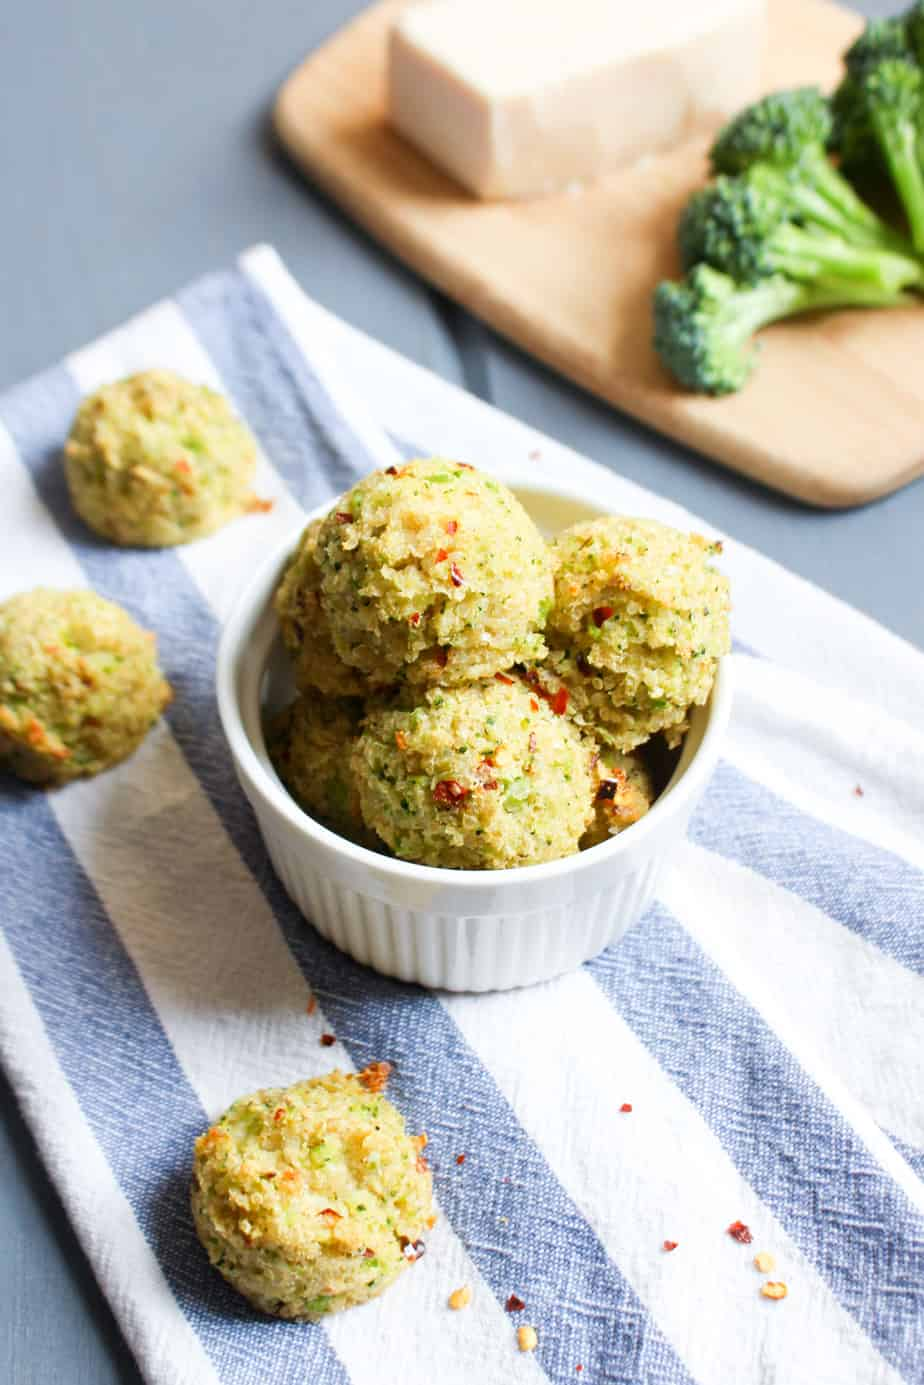 Parmesan Broccoli Quinoa Bites by Frugal Nutrition